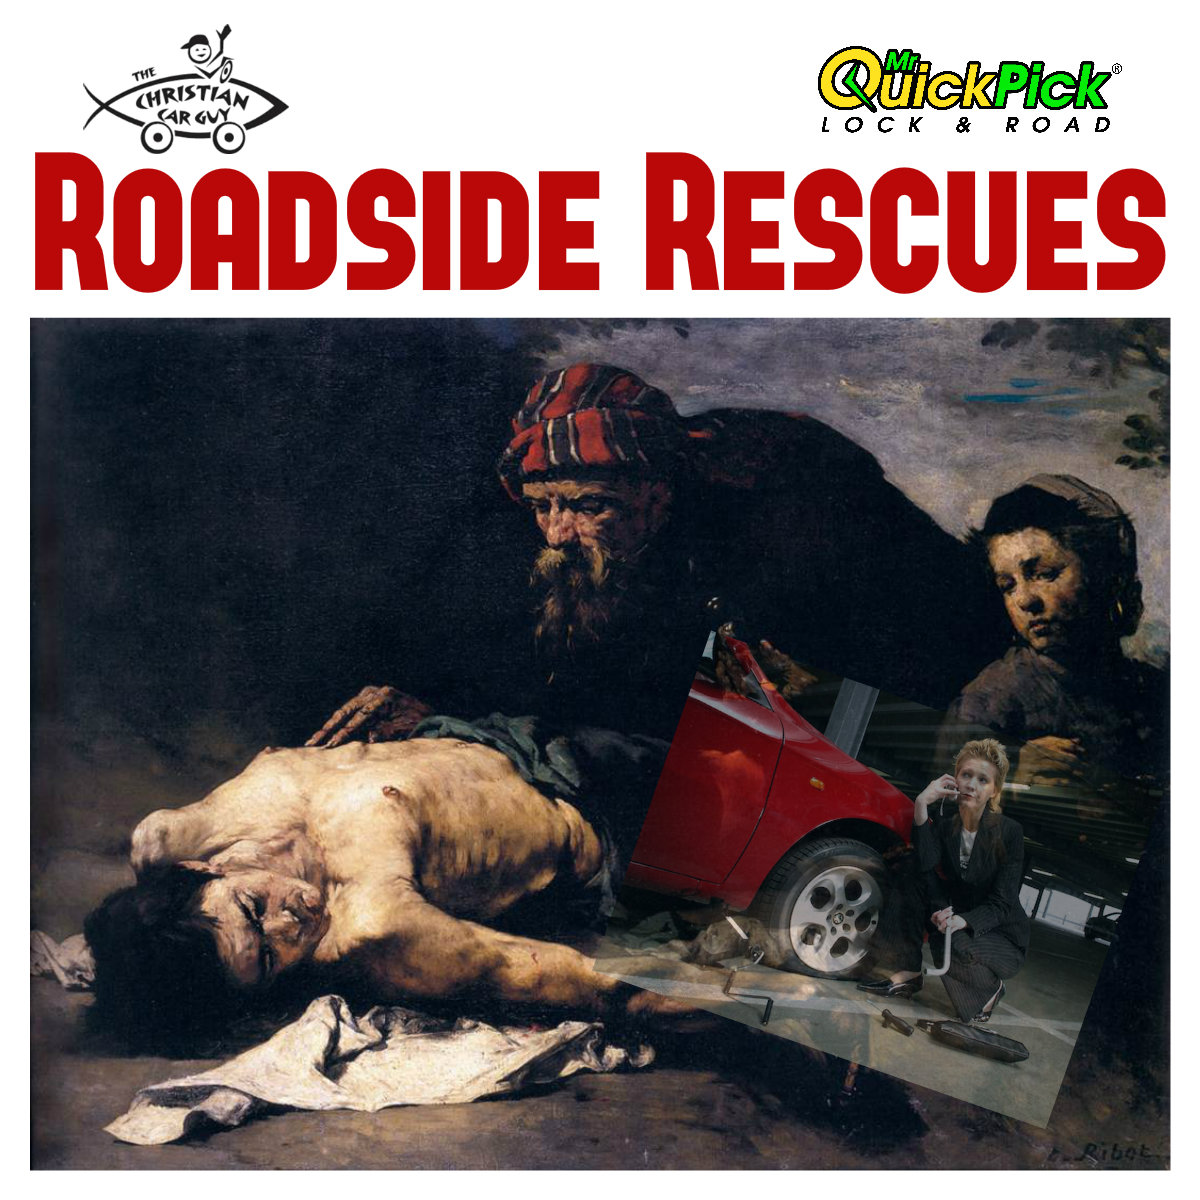 Roadside Rescues